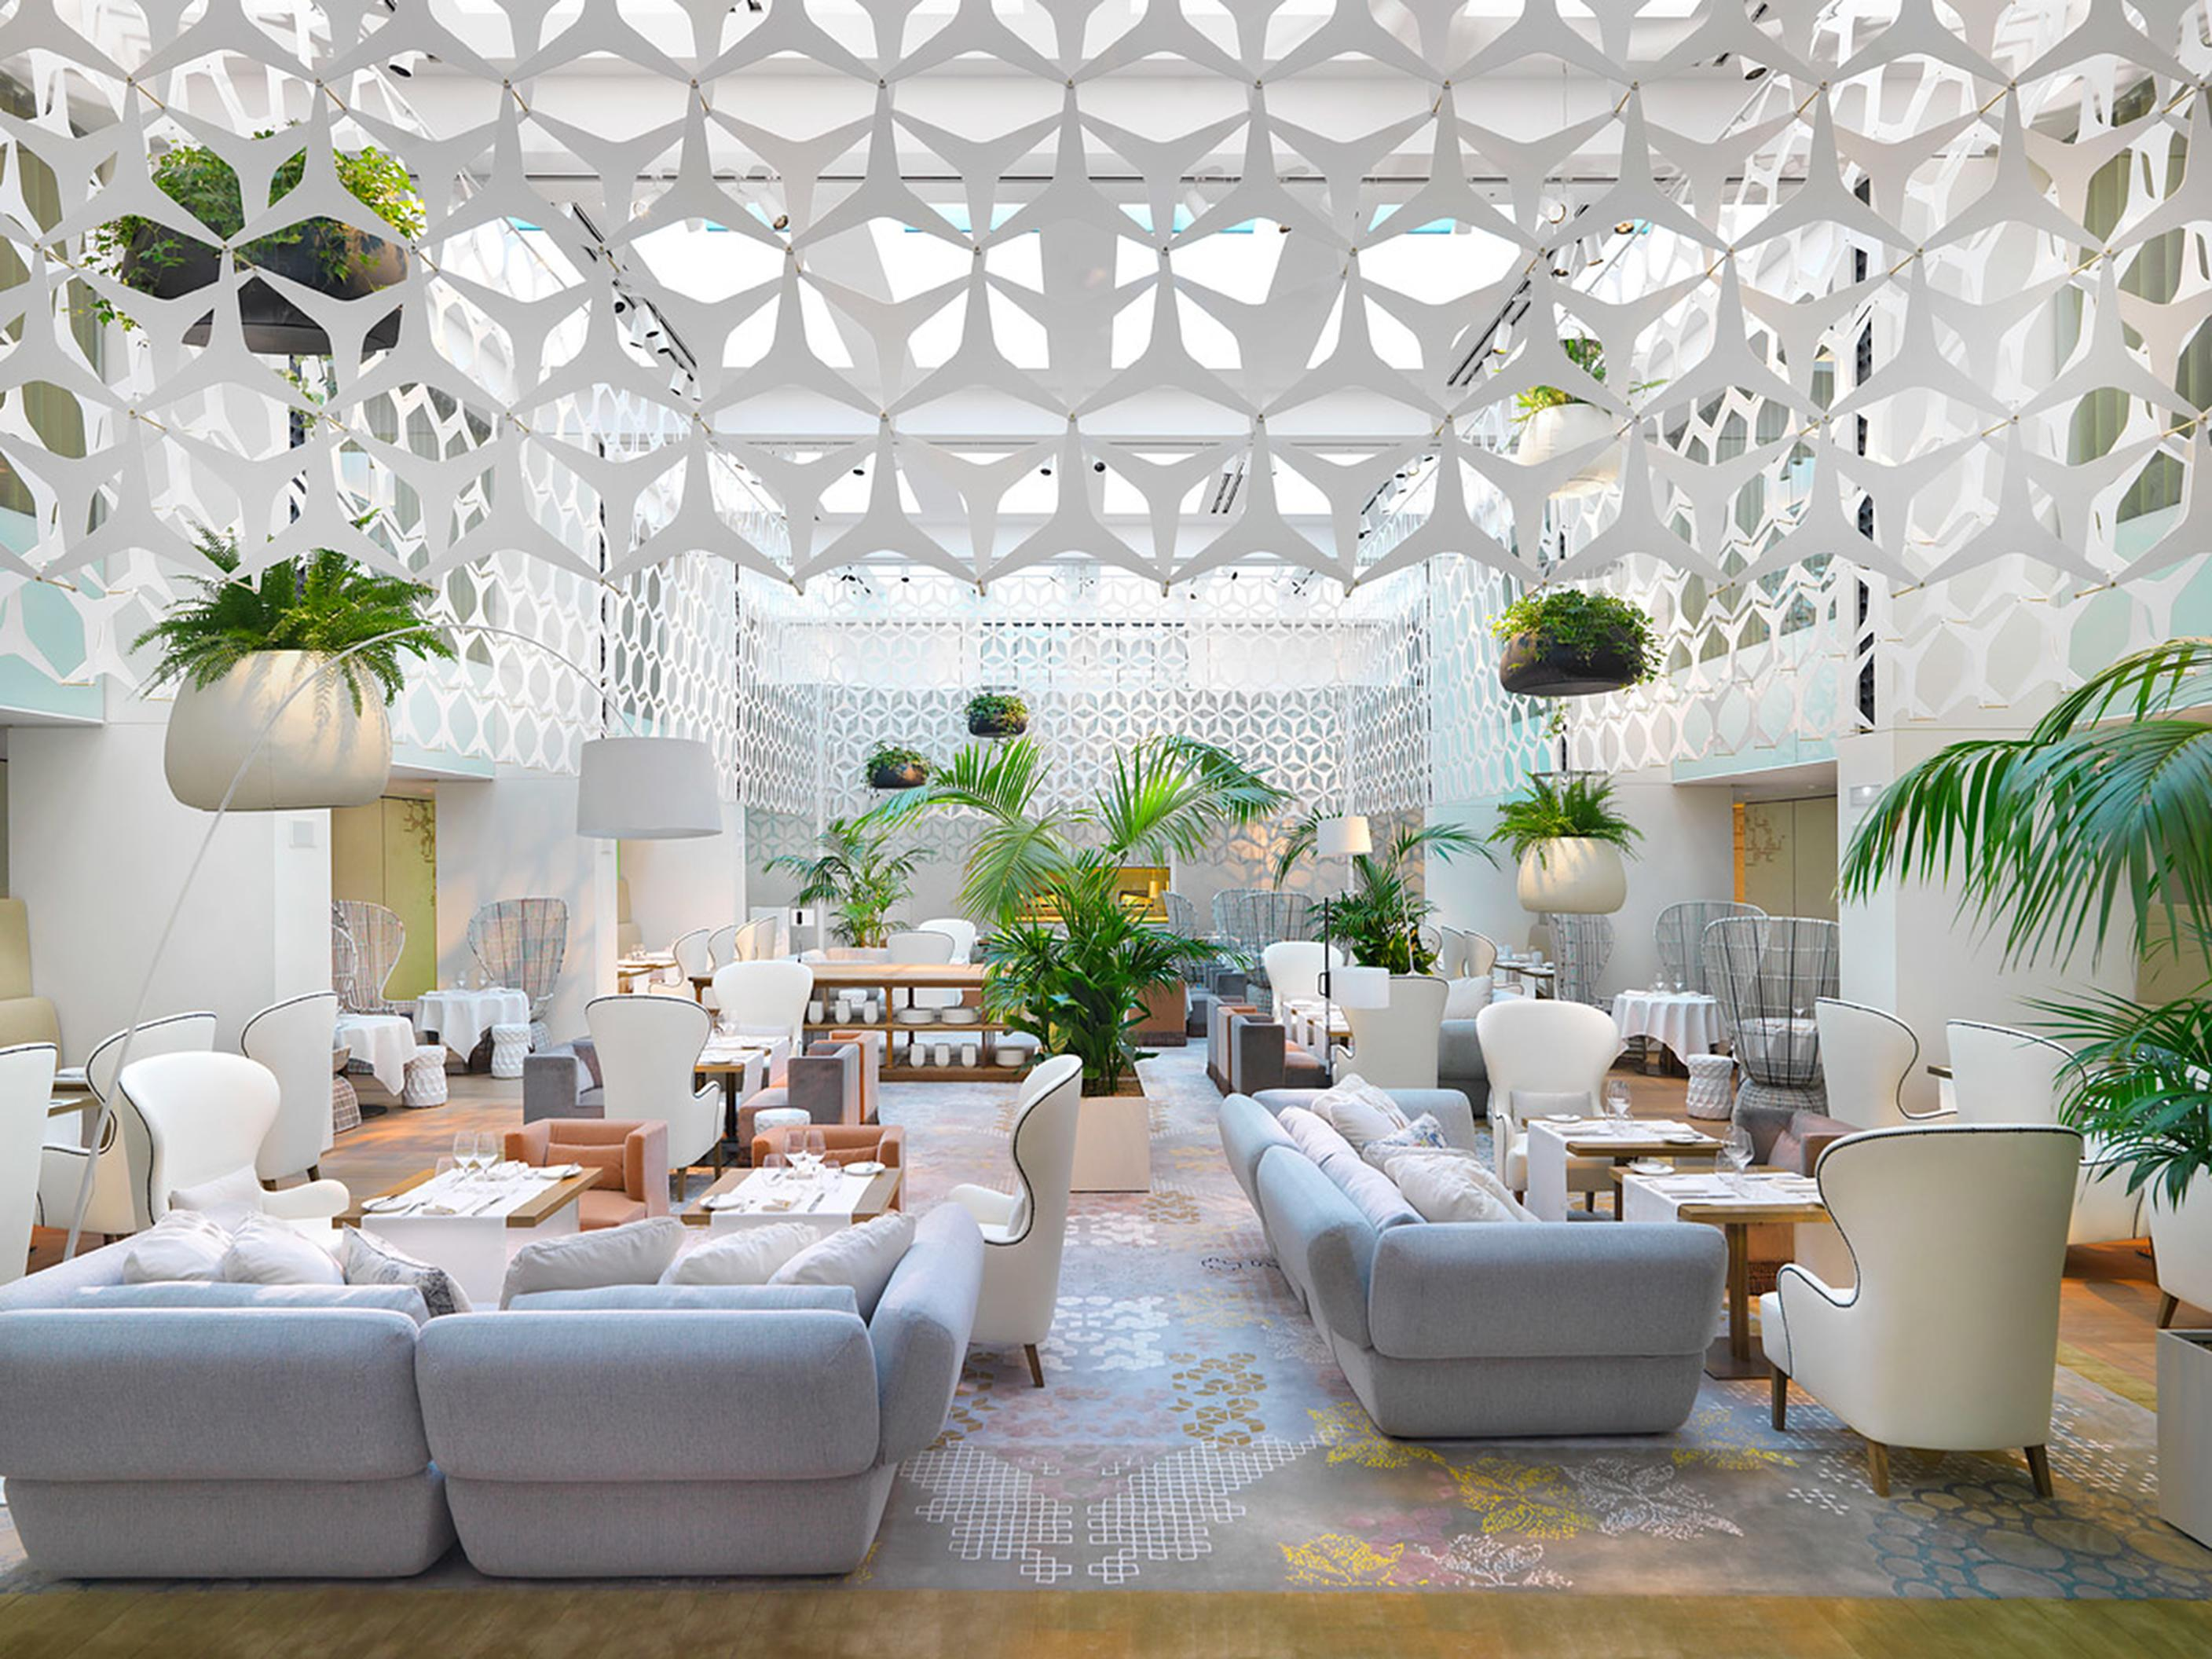 One Of The Most Perfect Examples Luxury Hotels In Barcelona Its Lobby Has A Modern Décor That Invites Hotel Design Furniture Is Simple And